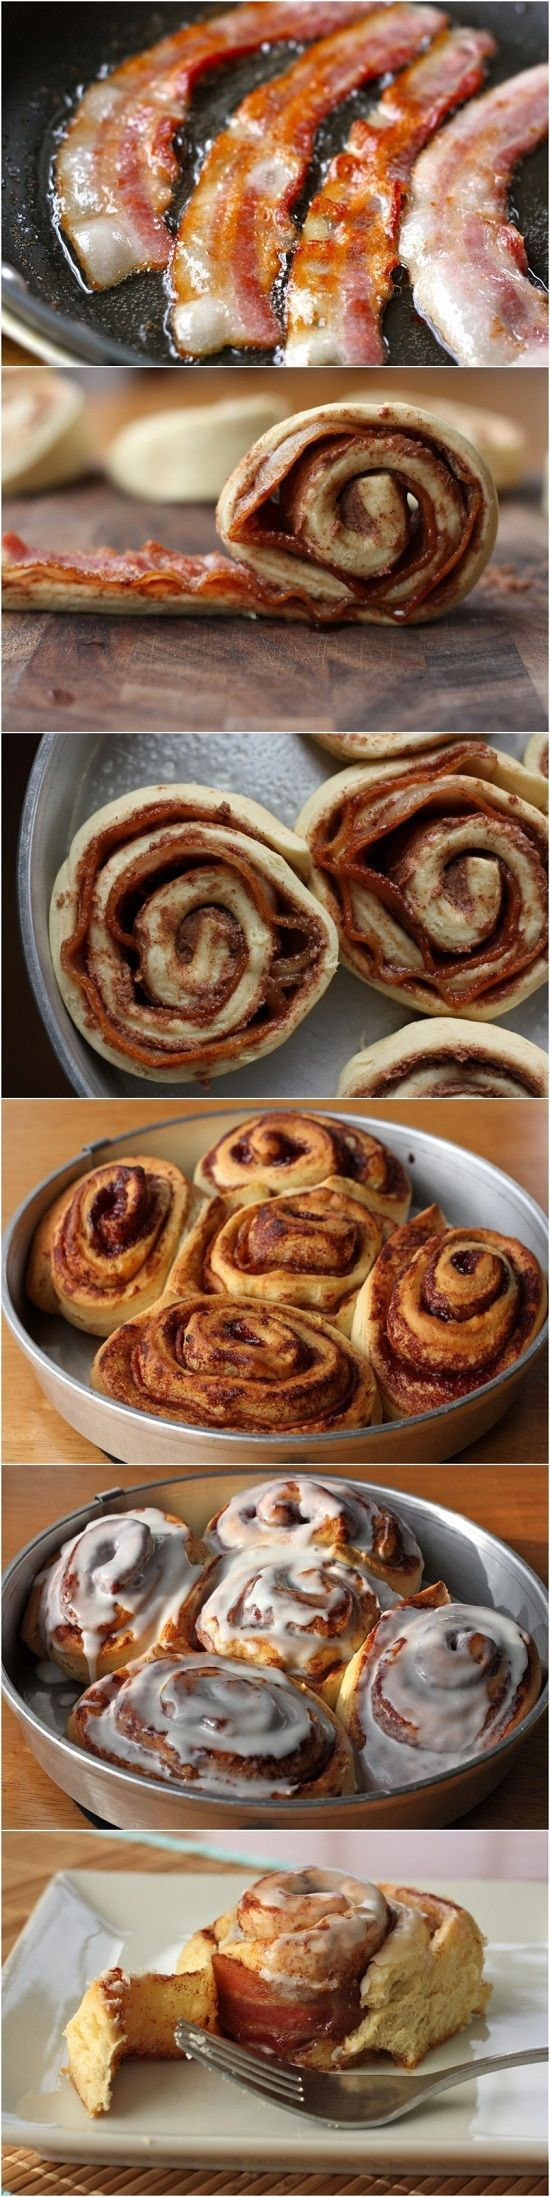 Sweet mother of all things holy..Bacon Cinnamon Rolls